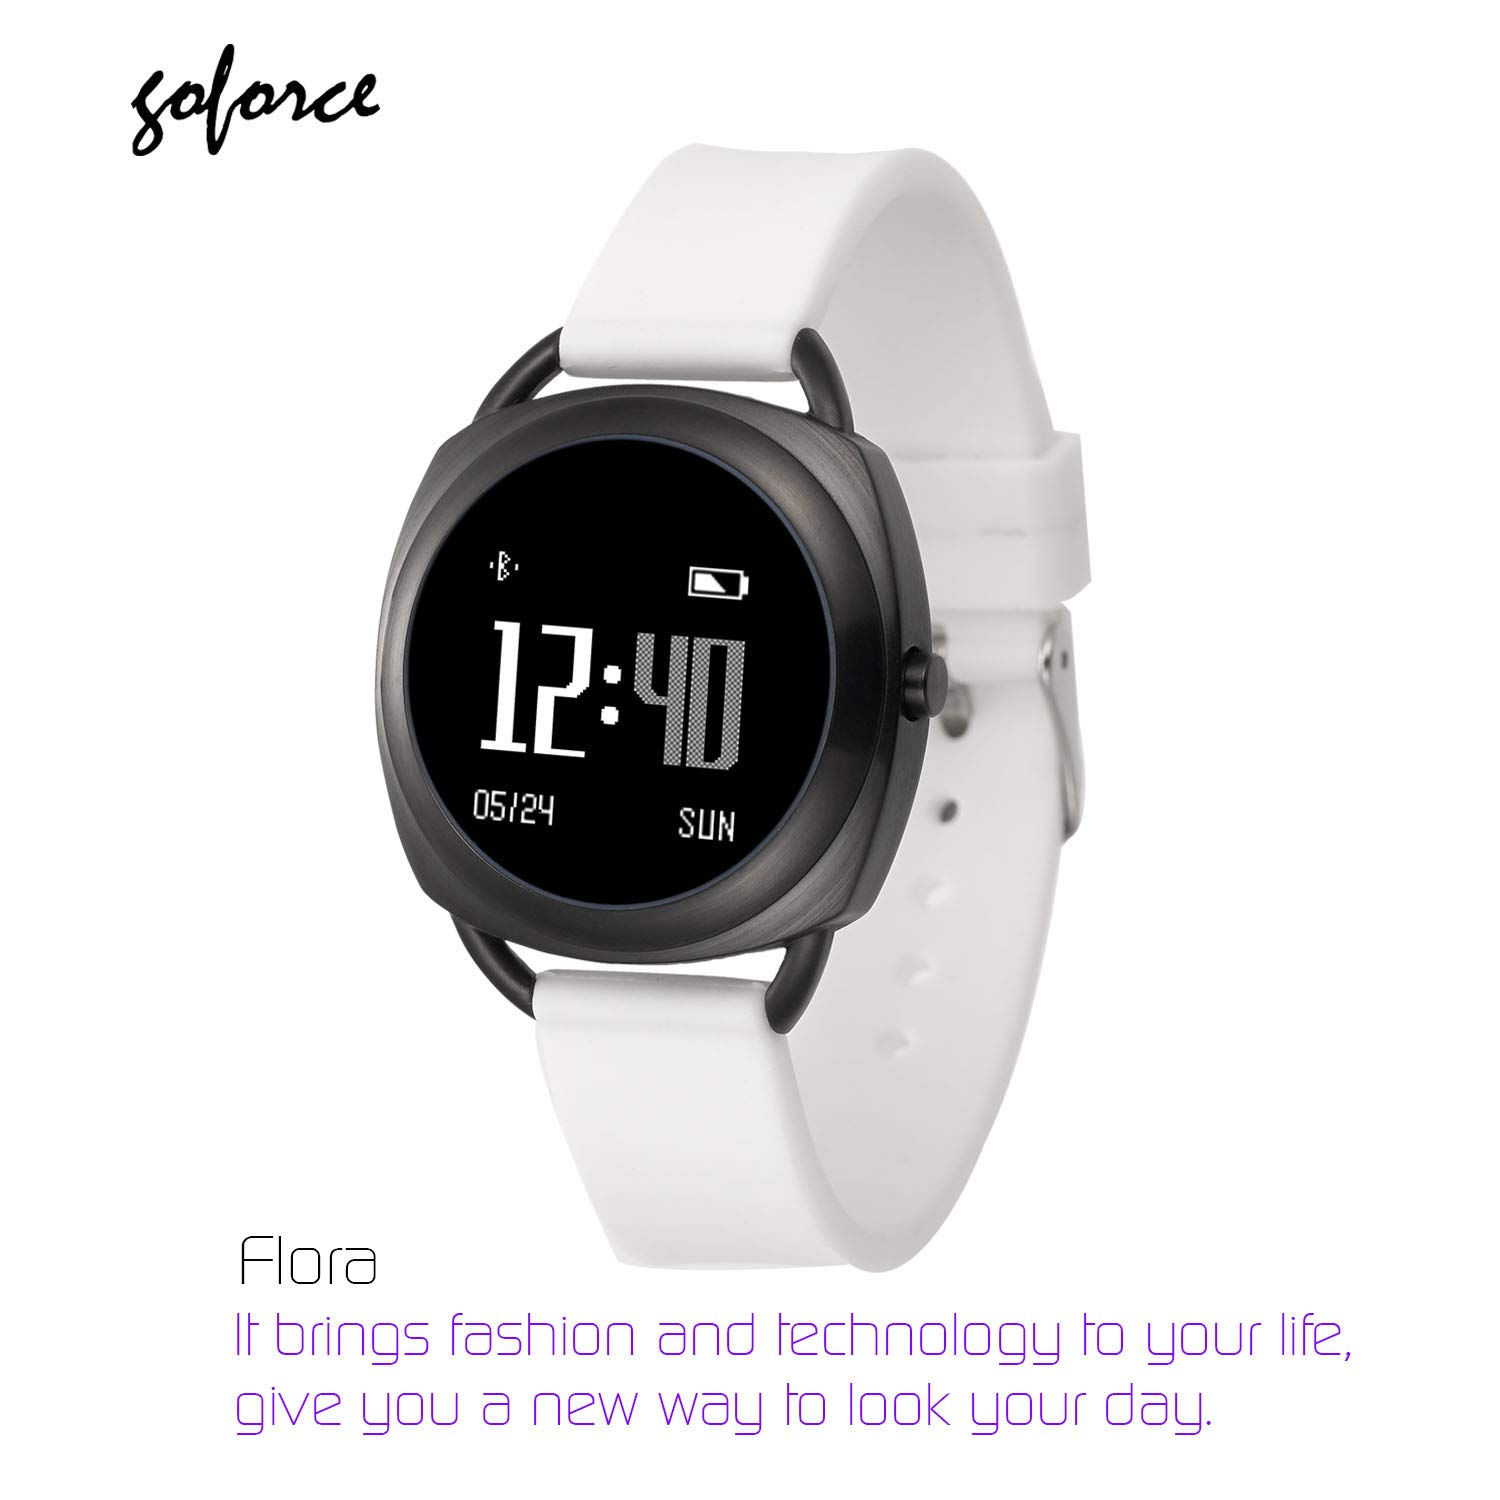 goforce Flora Fitness Activity Tracker Bluetooth Smart Watch for Women with Heart Rate Monitor Pedometer Distant Counter Calorie Burner Sleep Monitor Stainless Steel Case Waterproof 3ATM White